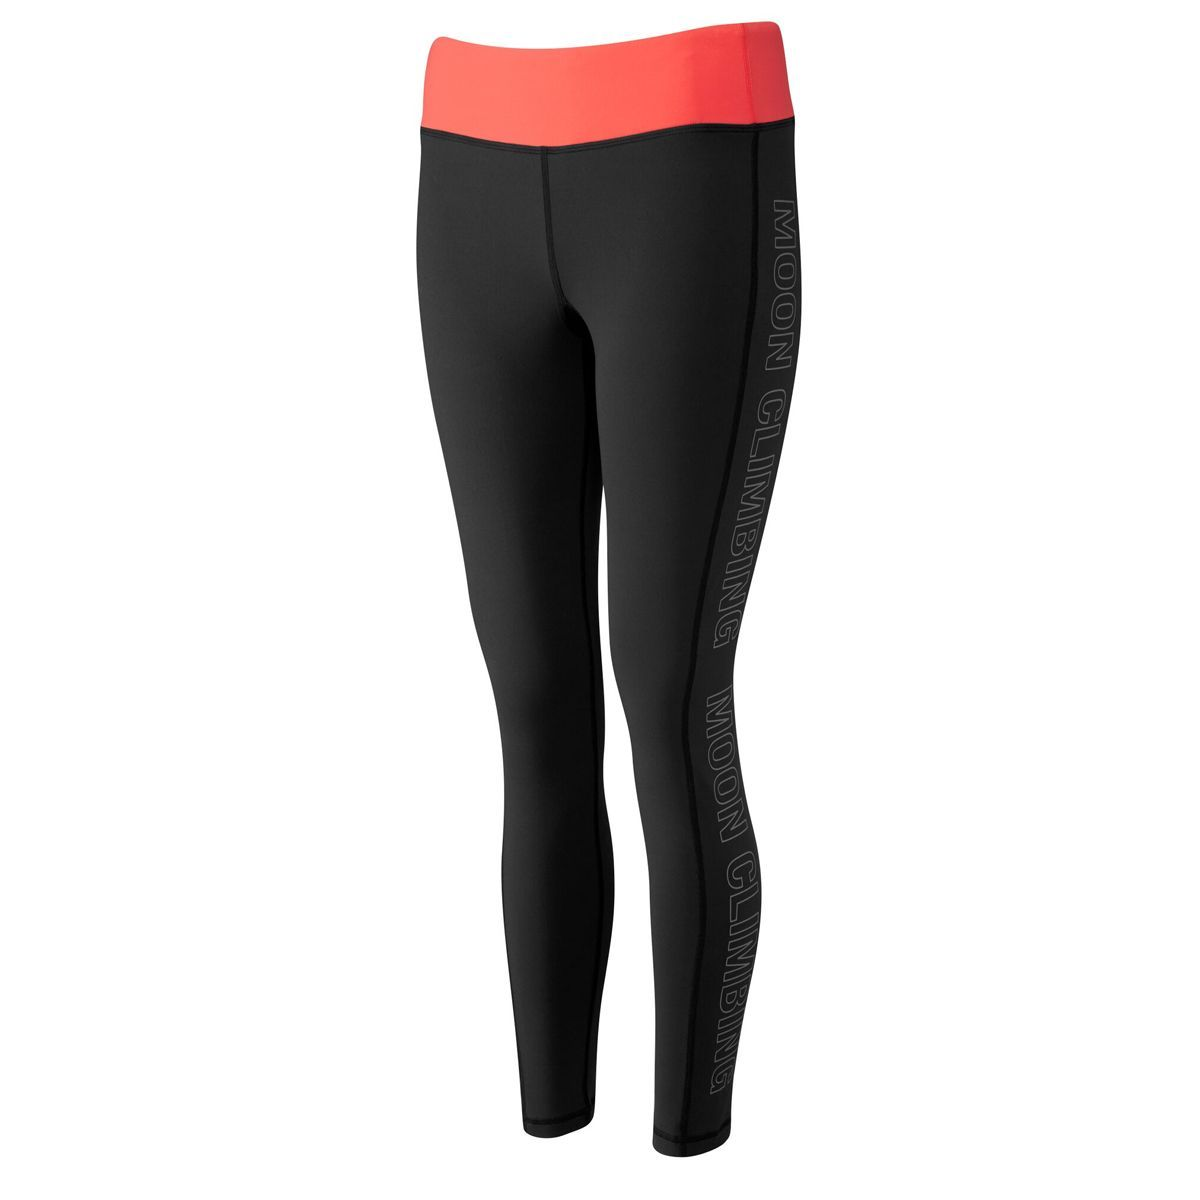 Moon Sigma Leggings Womens, front/side view in Black and Peach colours